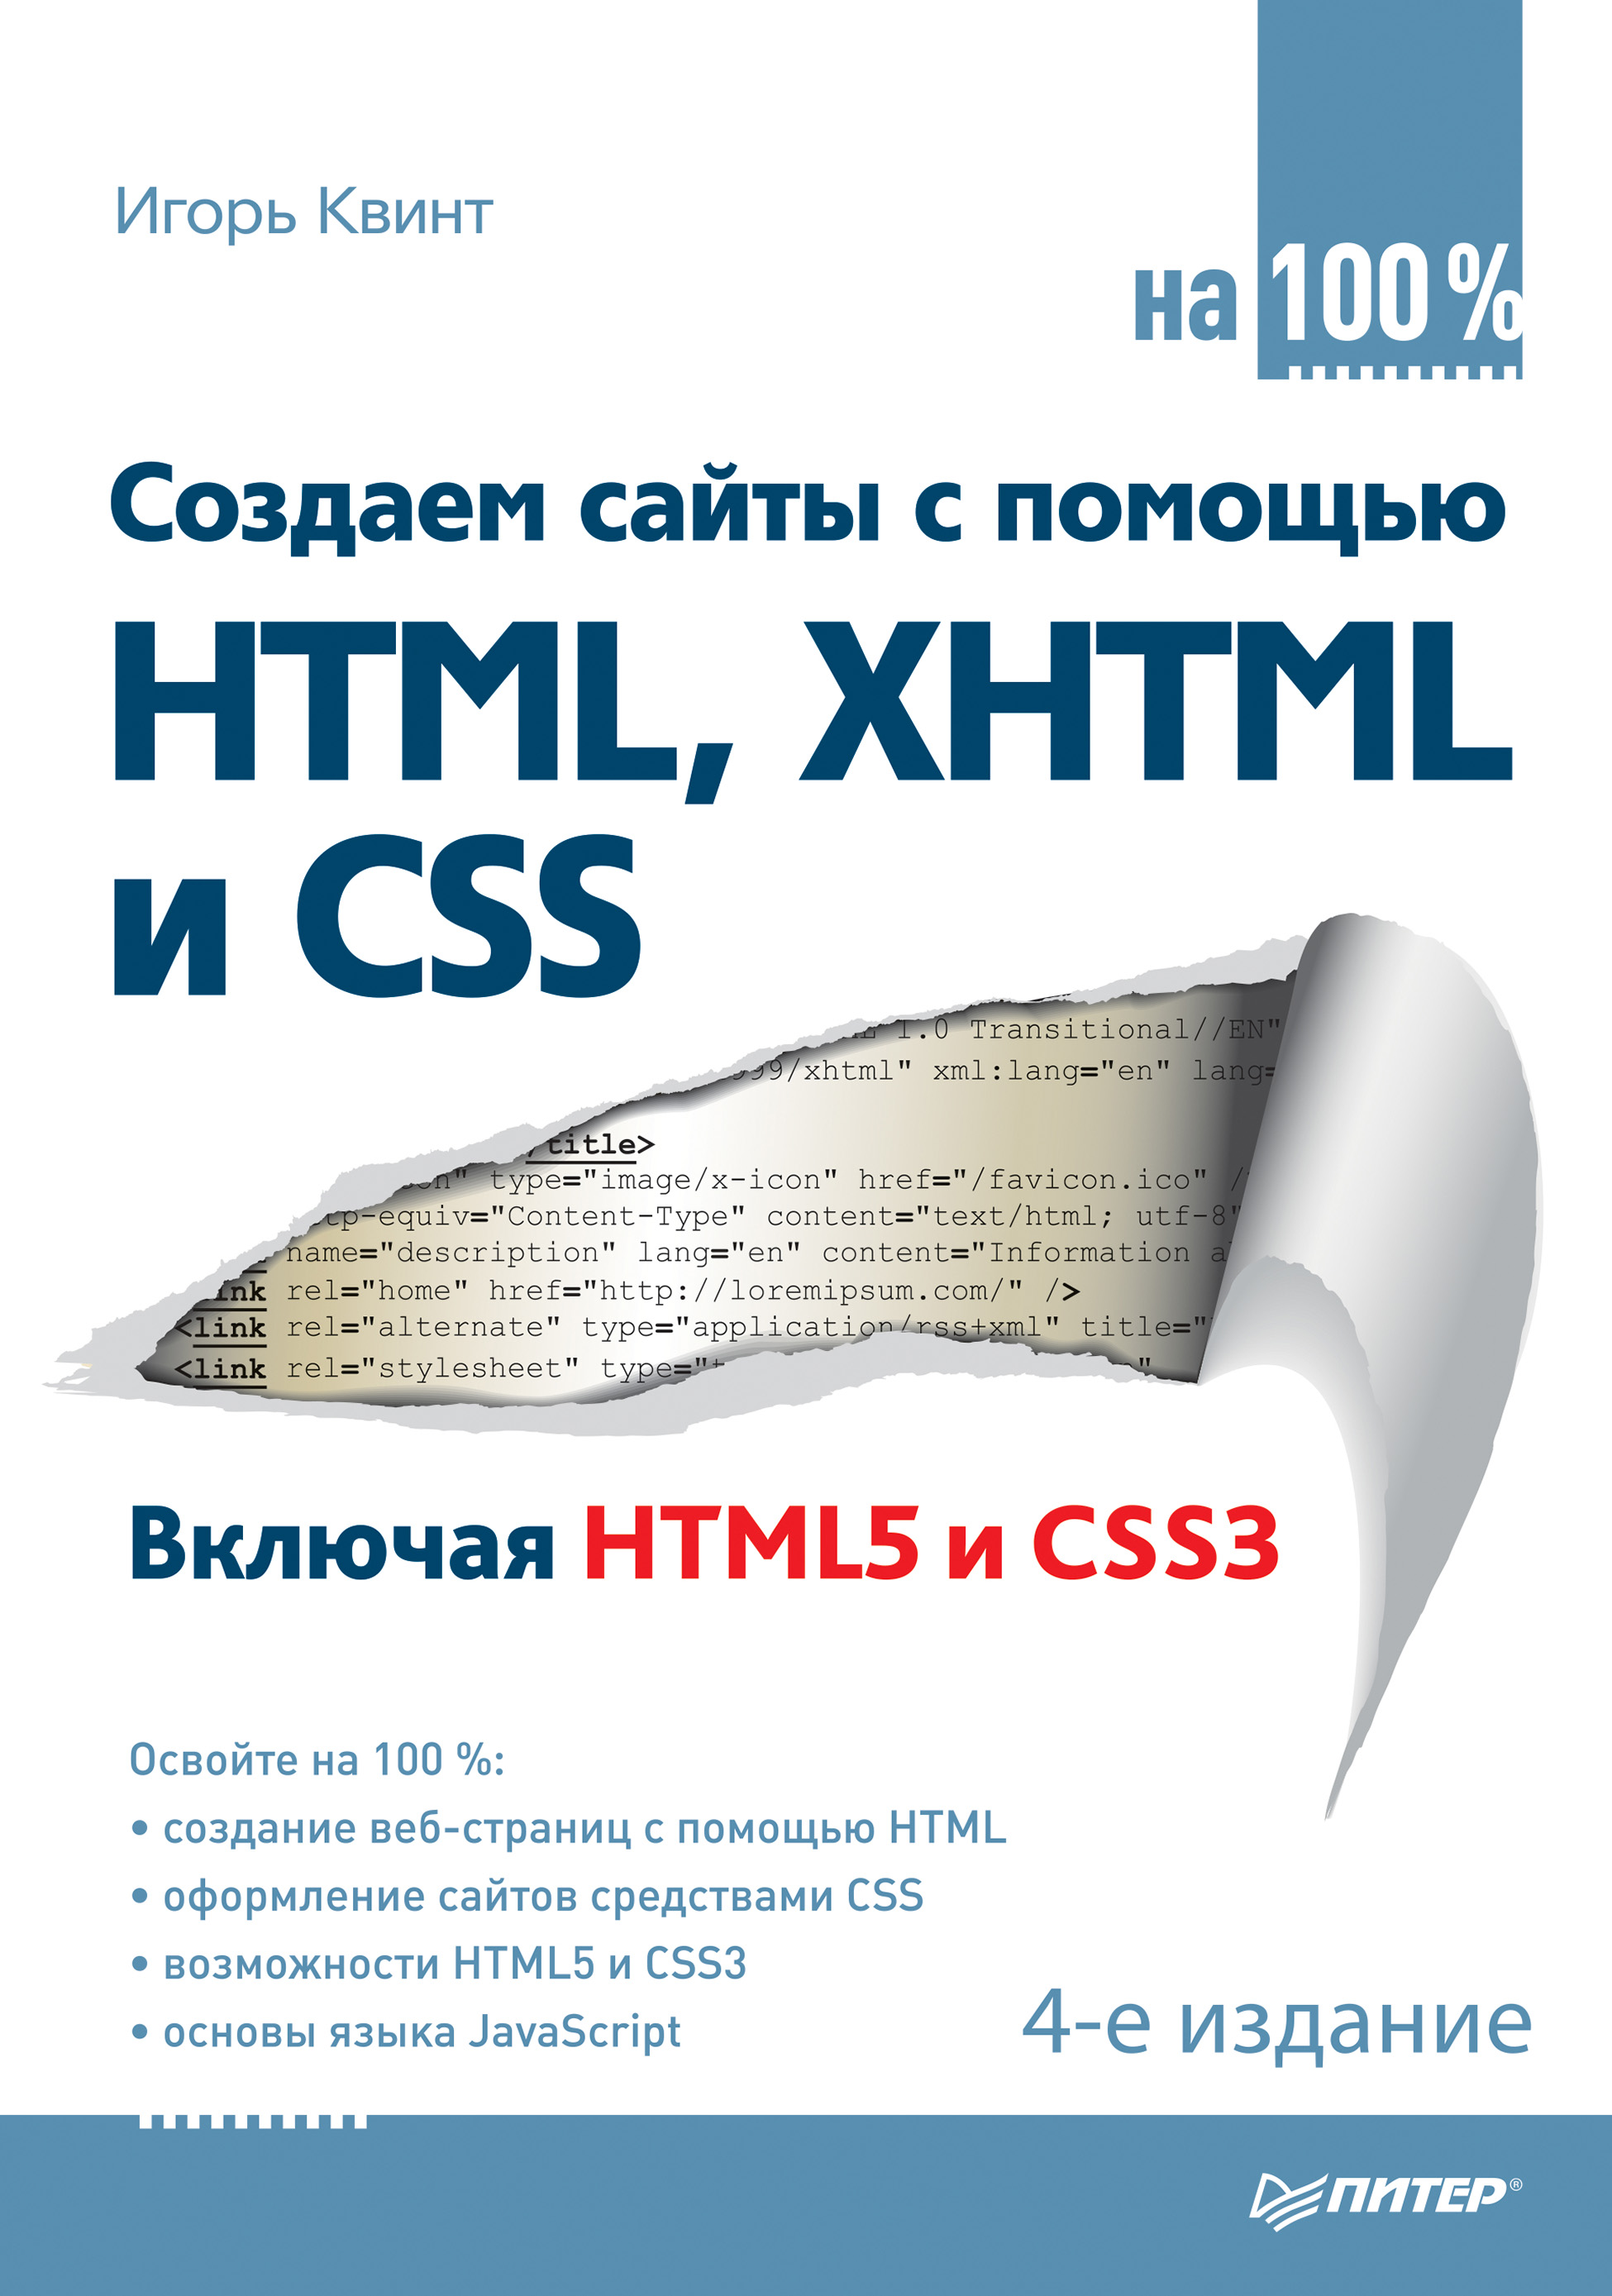 Игорь Квинт Создаем сайты с помощью HTML, XHTML и CSS на 100% larsen rob beginning html and css